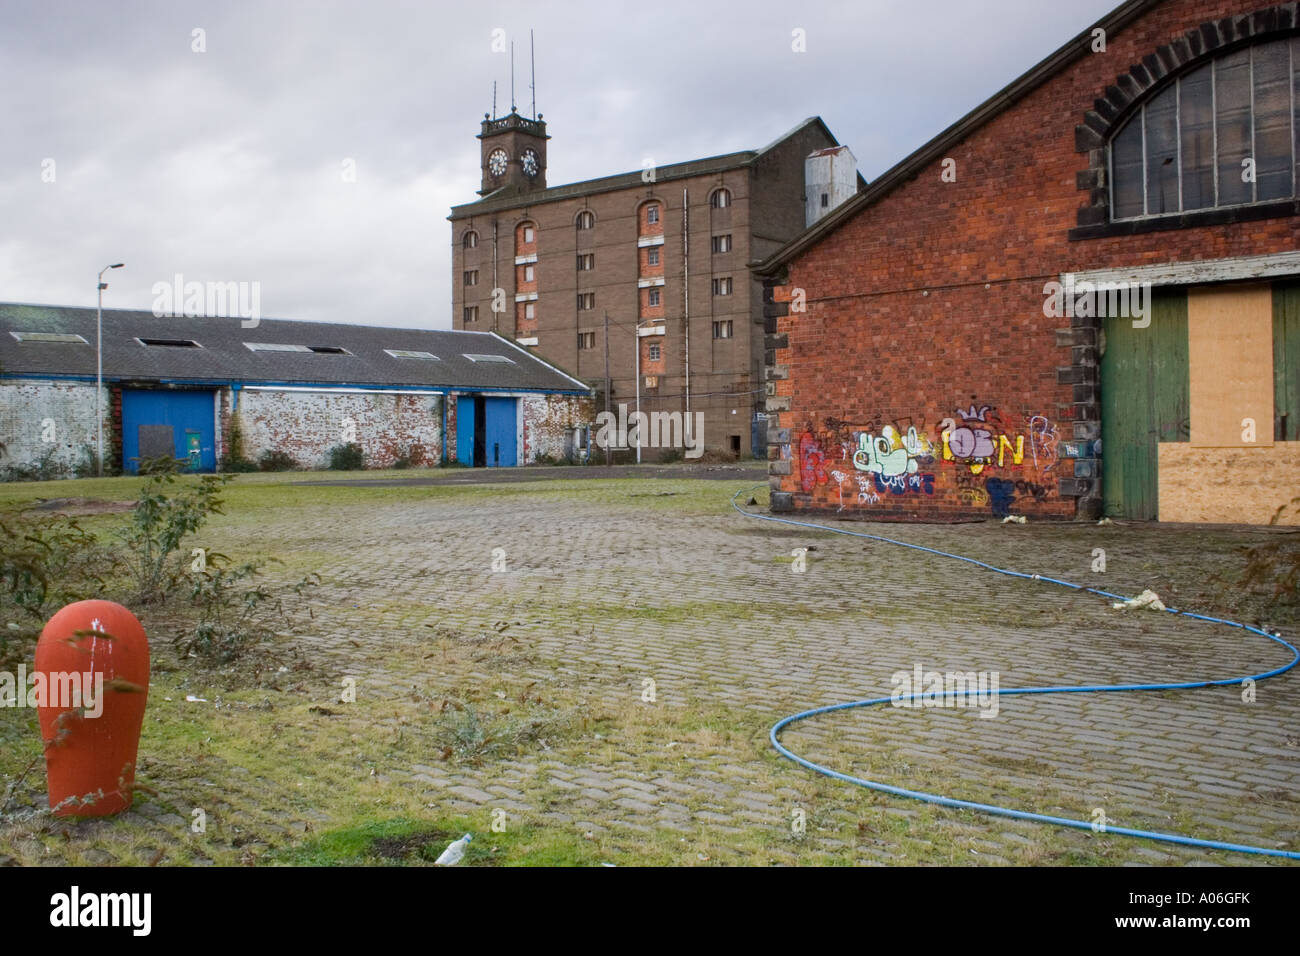 Abandoned dockland industrial warehouses and factories in Dundee, UK - Stock Image